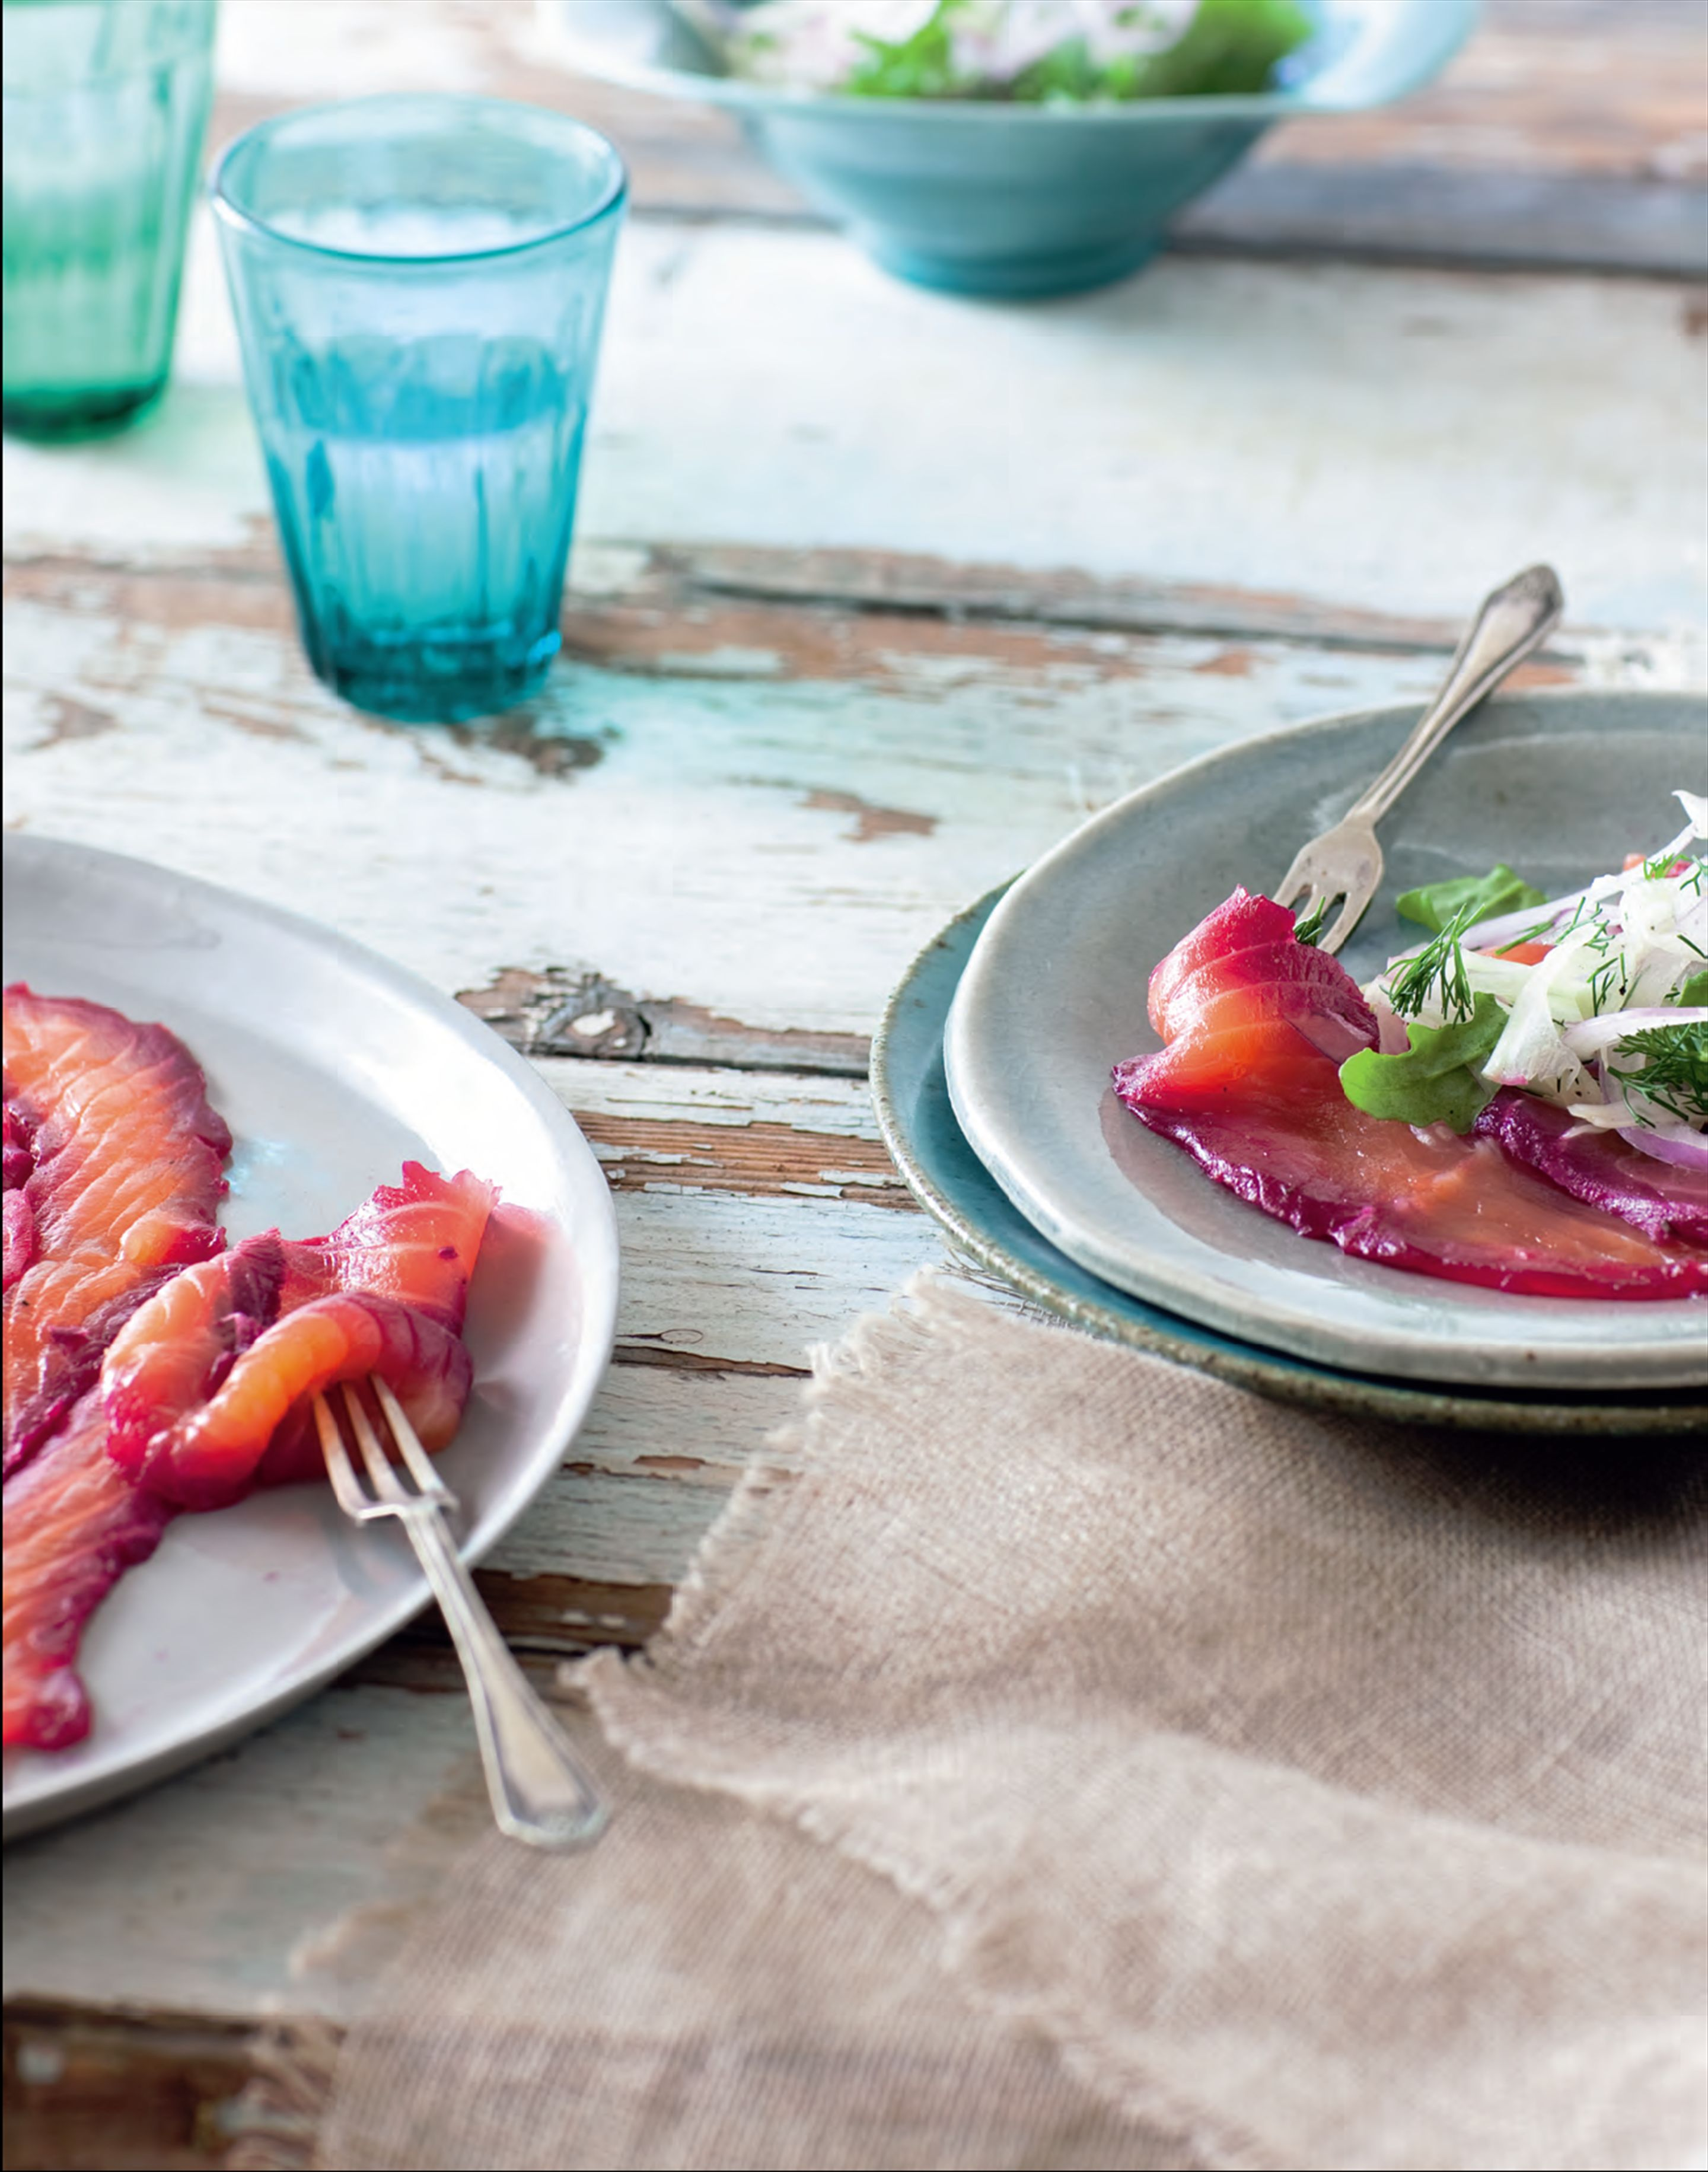 Beetroot-cured salmon with fennel salad